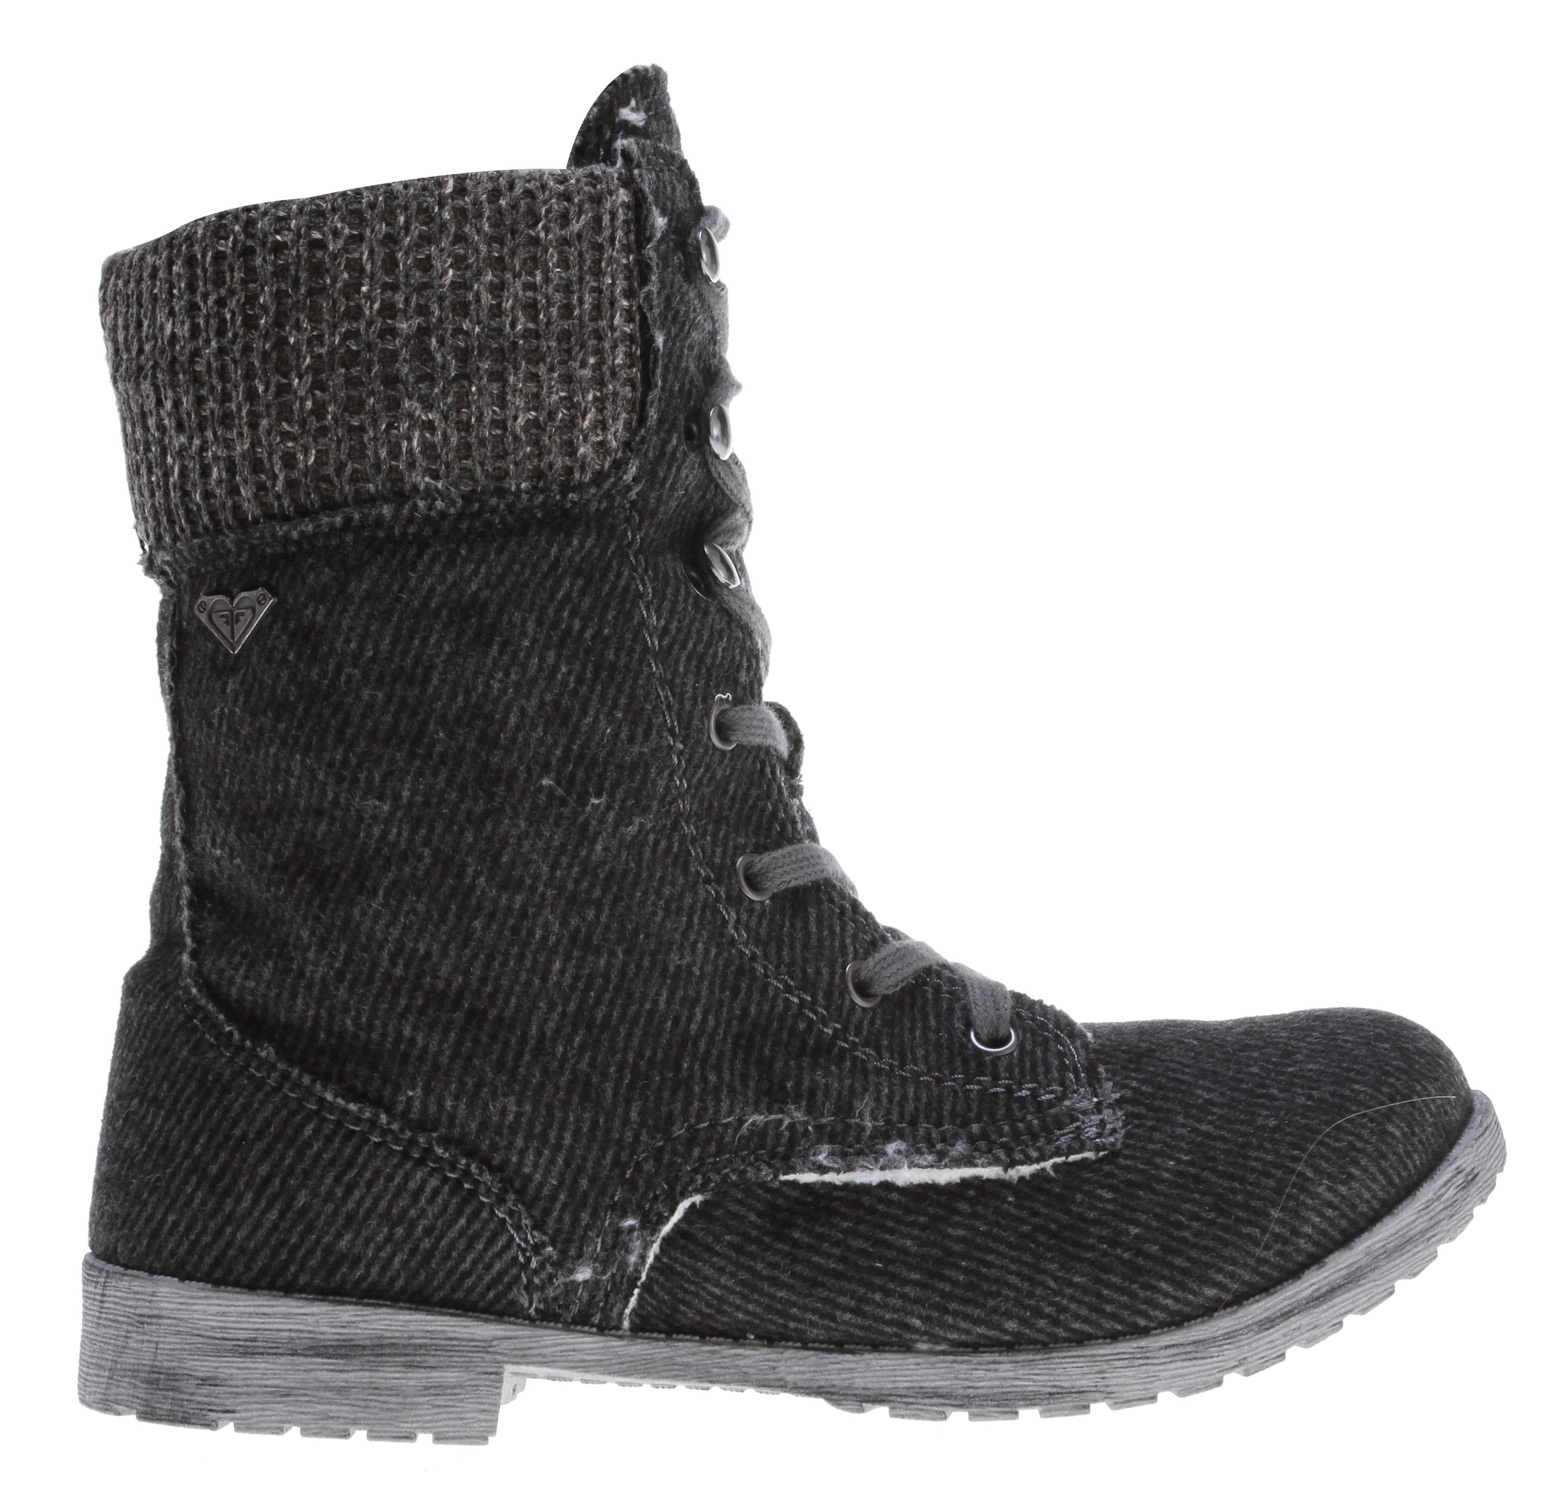 Surf Roxy Denver Boots - $50.95